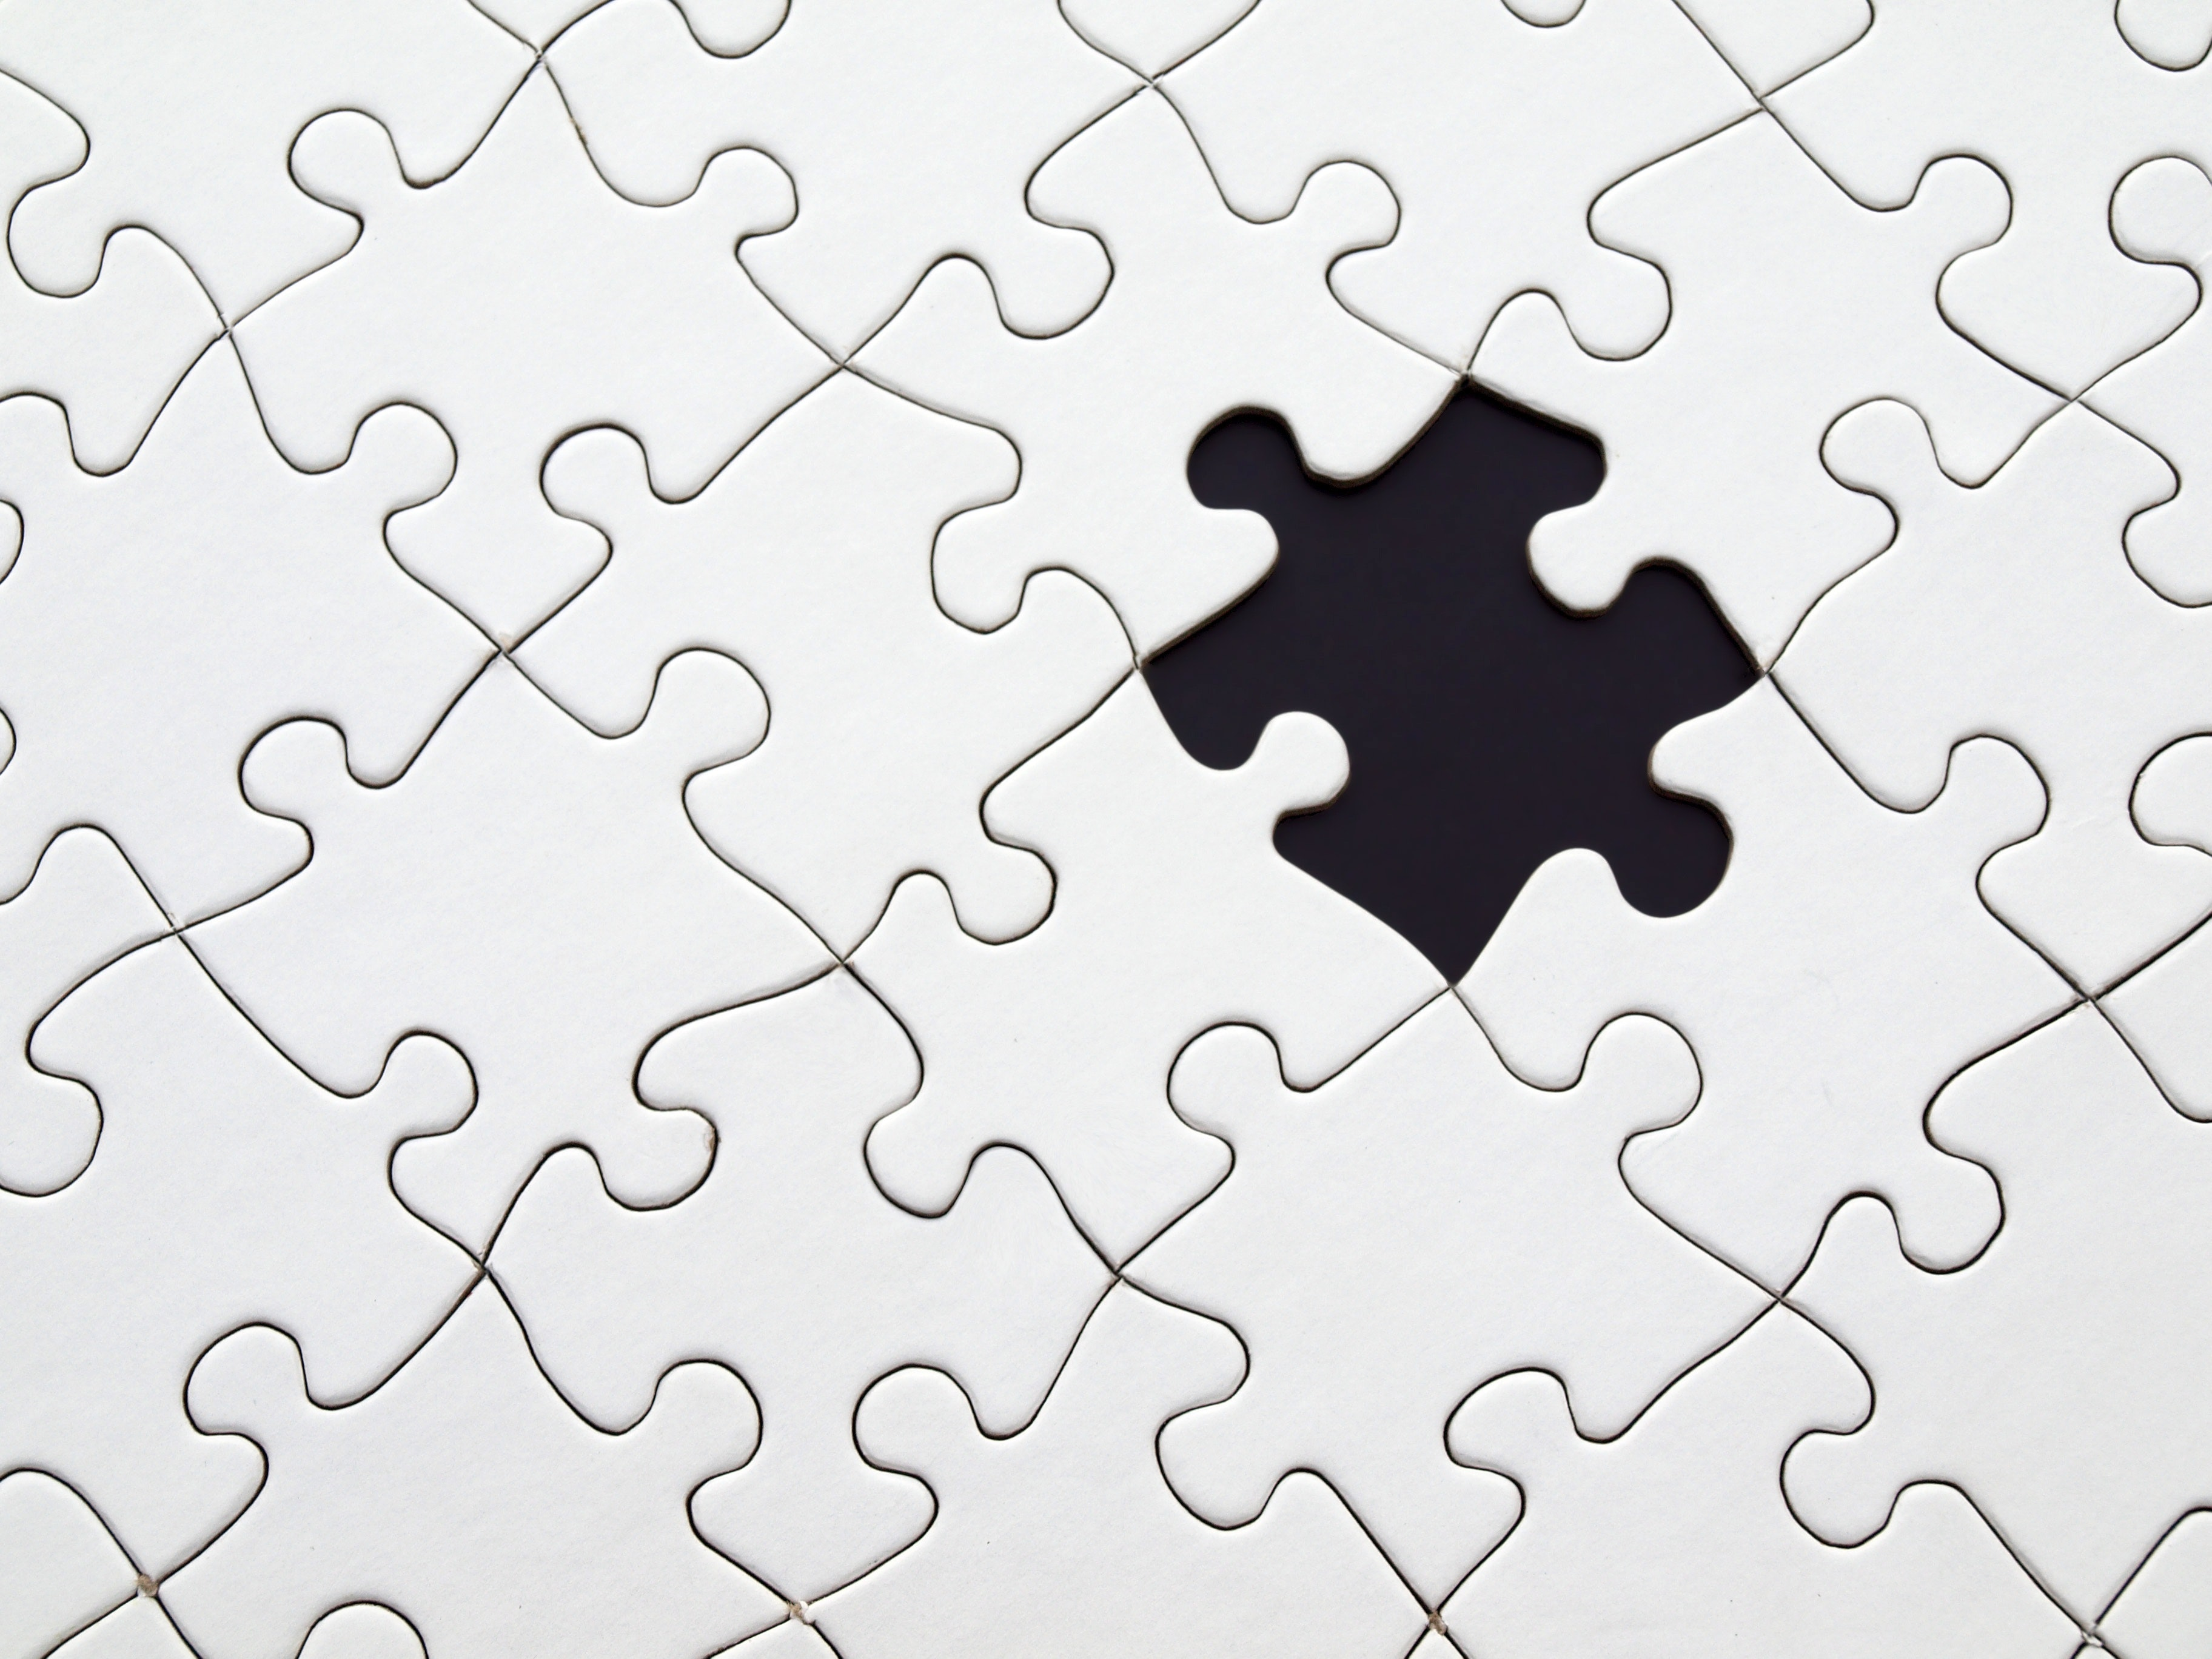 black-and-white-puzzle-pieces-fitting-together